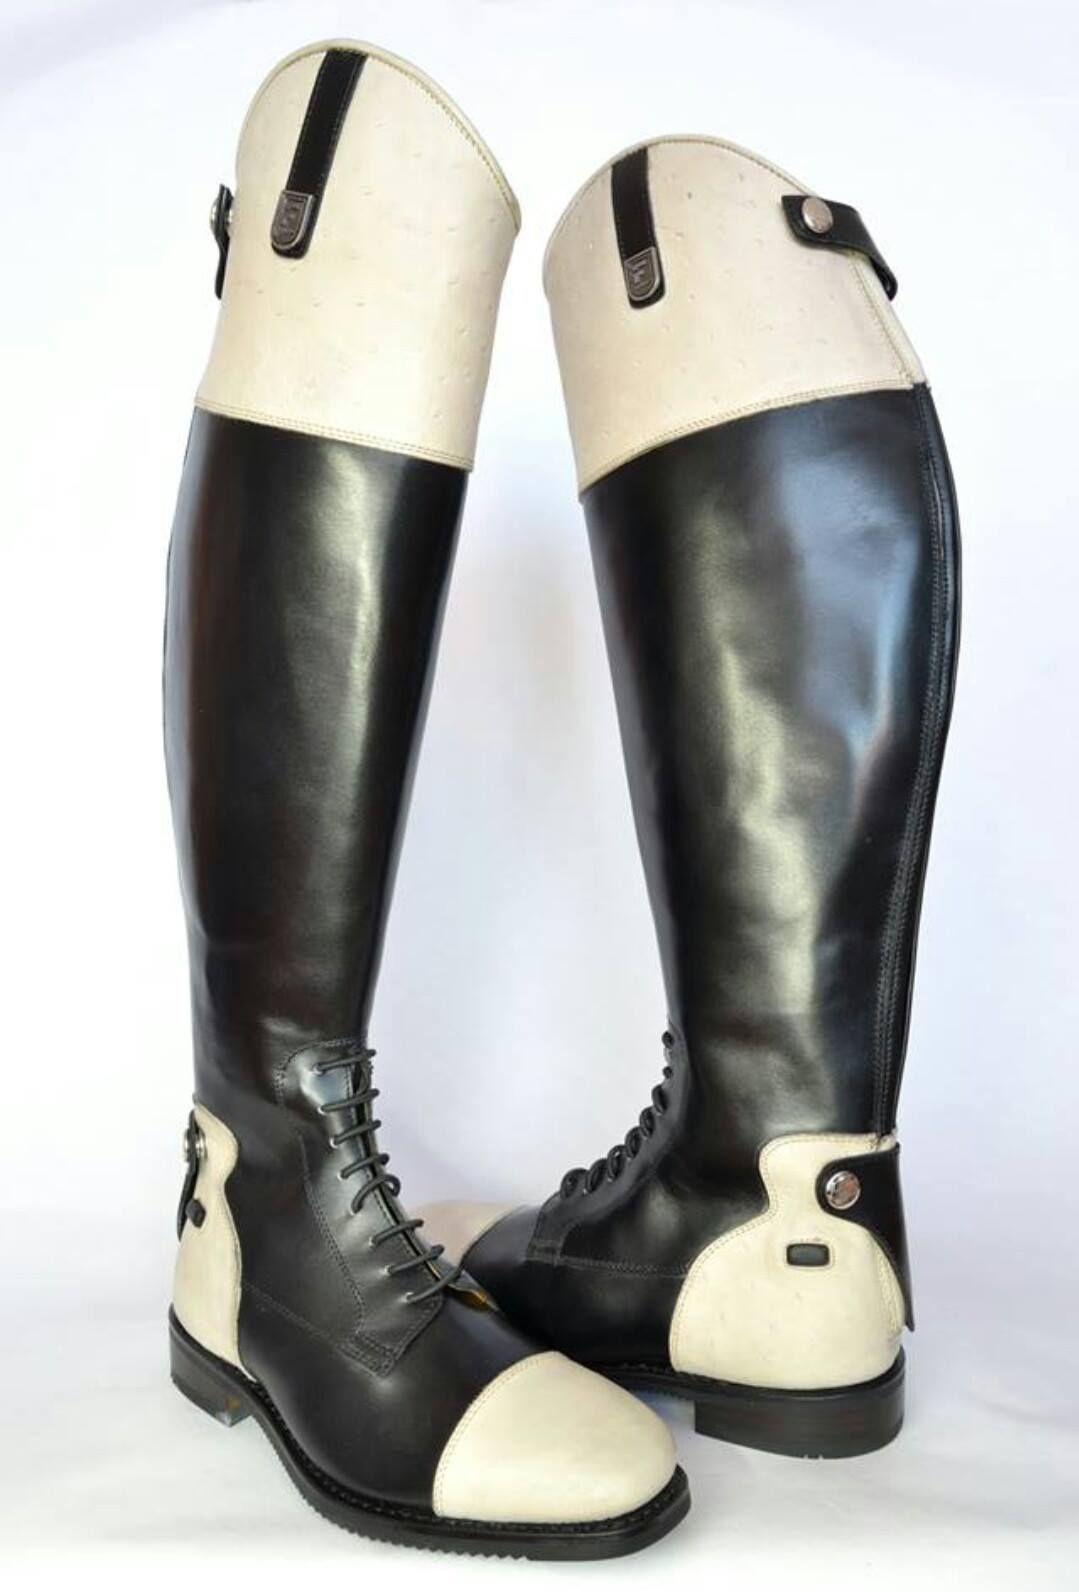 ee587289d9af Box calf custom leather boots with white ostrich. Custom made riding boots  for show jumping, dressage or eventing. Lozano boots are made to measure  boots ...